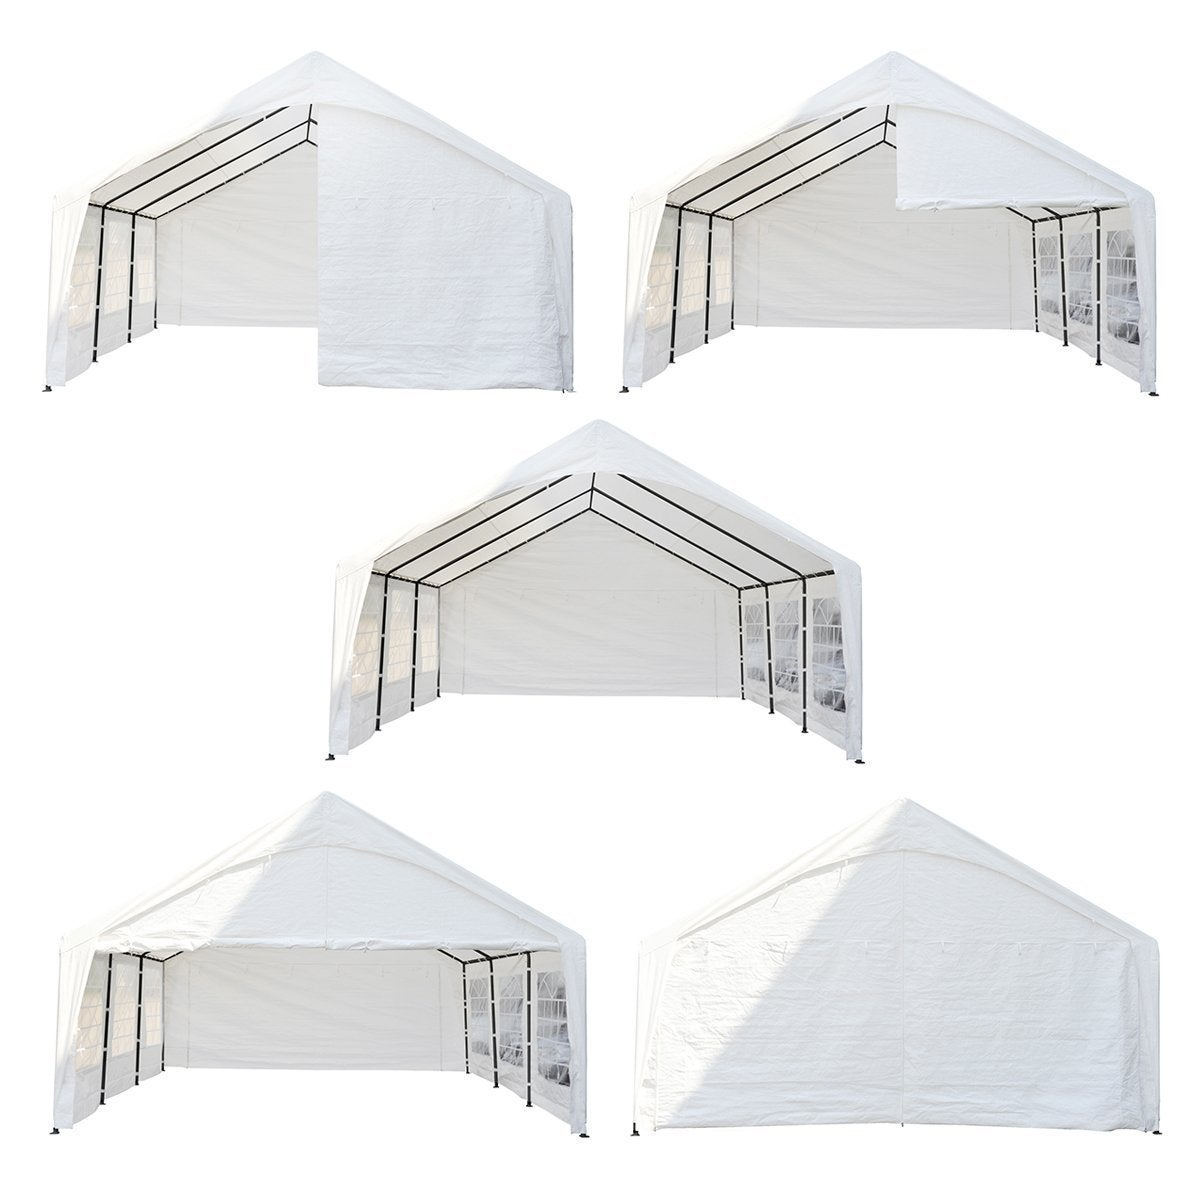 Abba Patio 20 x 20 feet Heavy Duty Domain Carport, Car Canopy Storage with  Steel Legs and Sidewalls, White